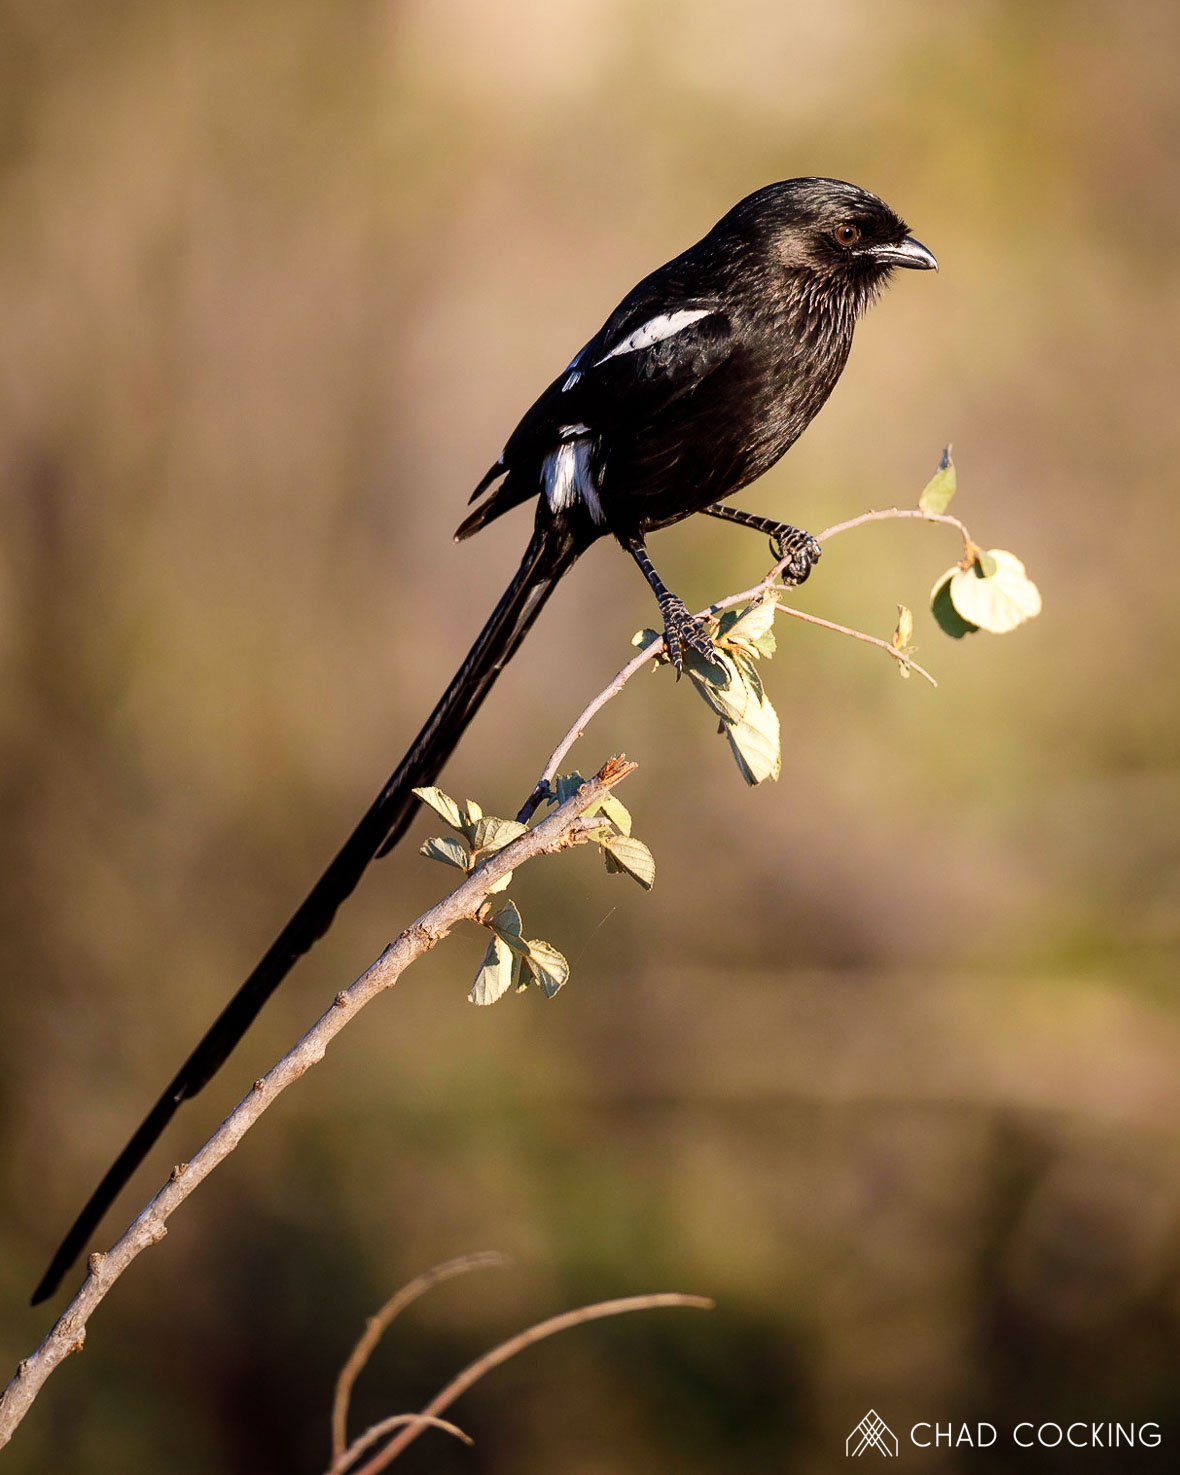 Magpie Shrike - Tanda Tula in the Timbavati Game Reserve, part of the Greater Kruger National Park, South Africa - Photo credit: Chad Cocking